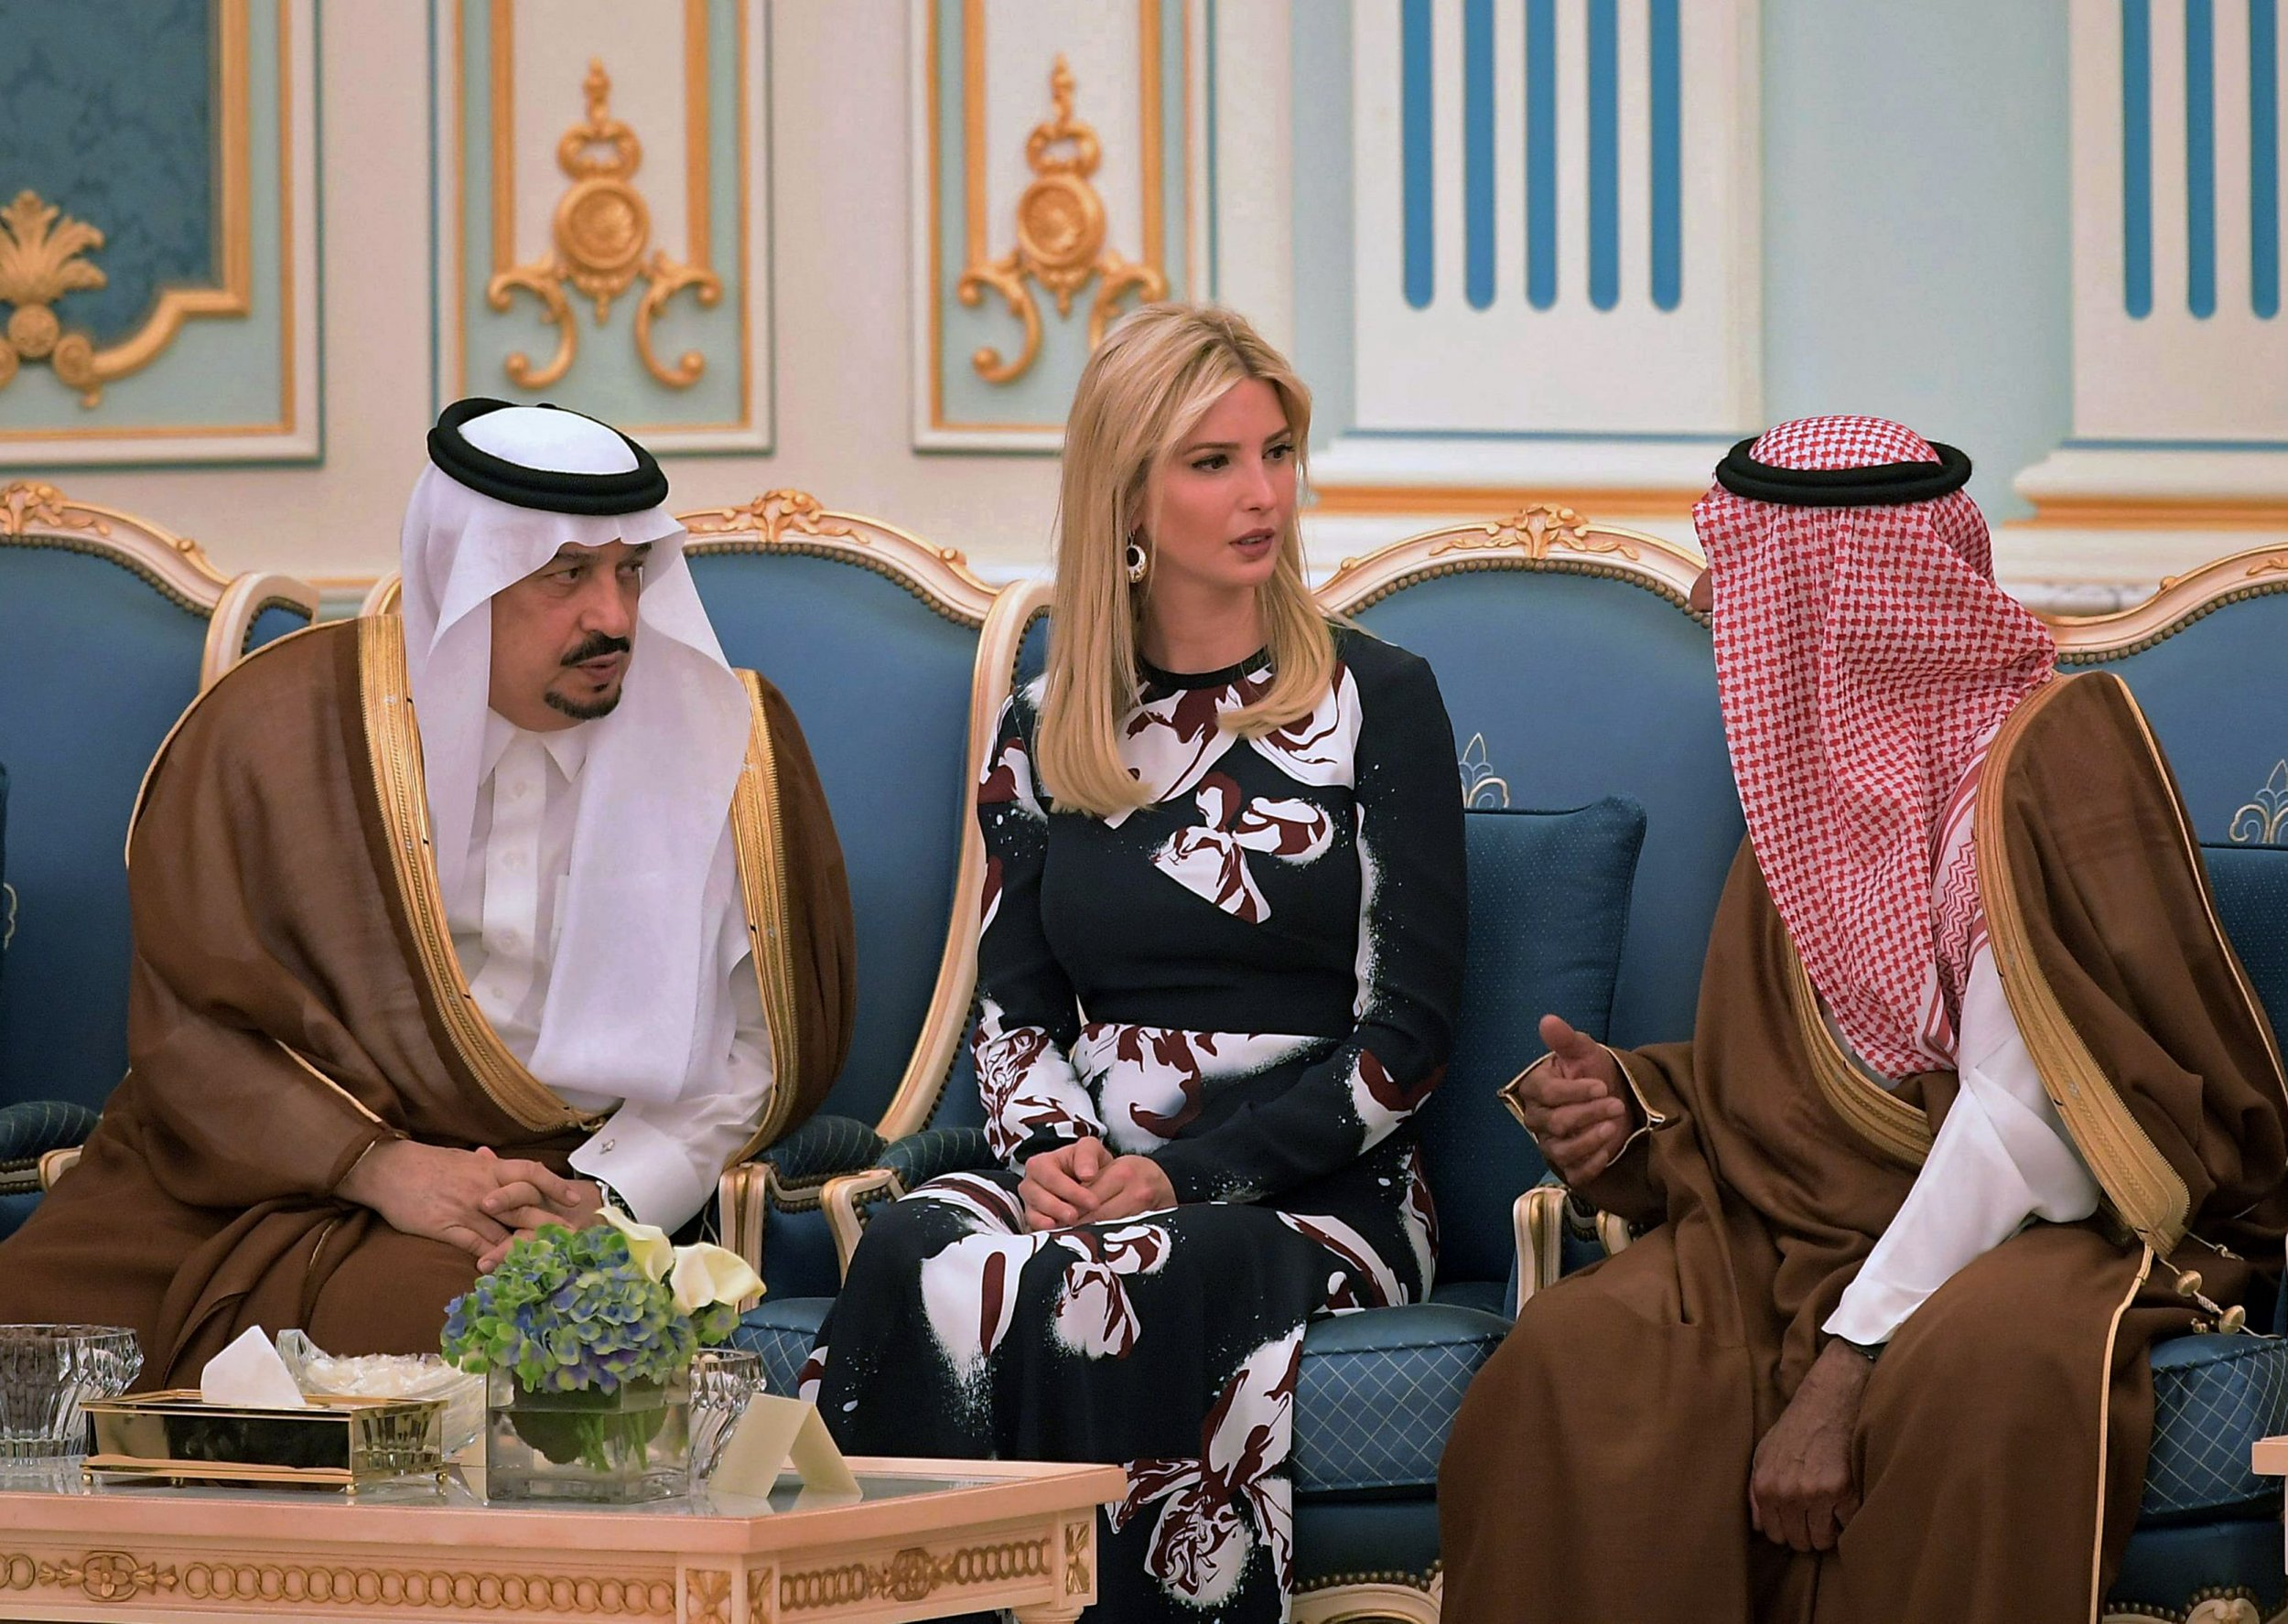 Ivanka Trump in Saudi Arabia